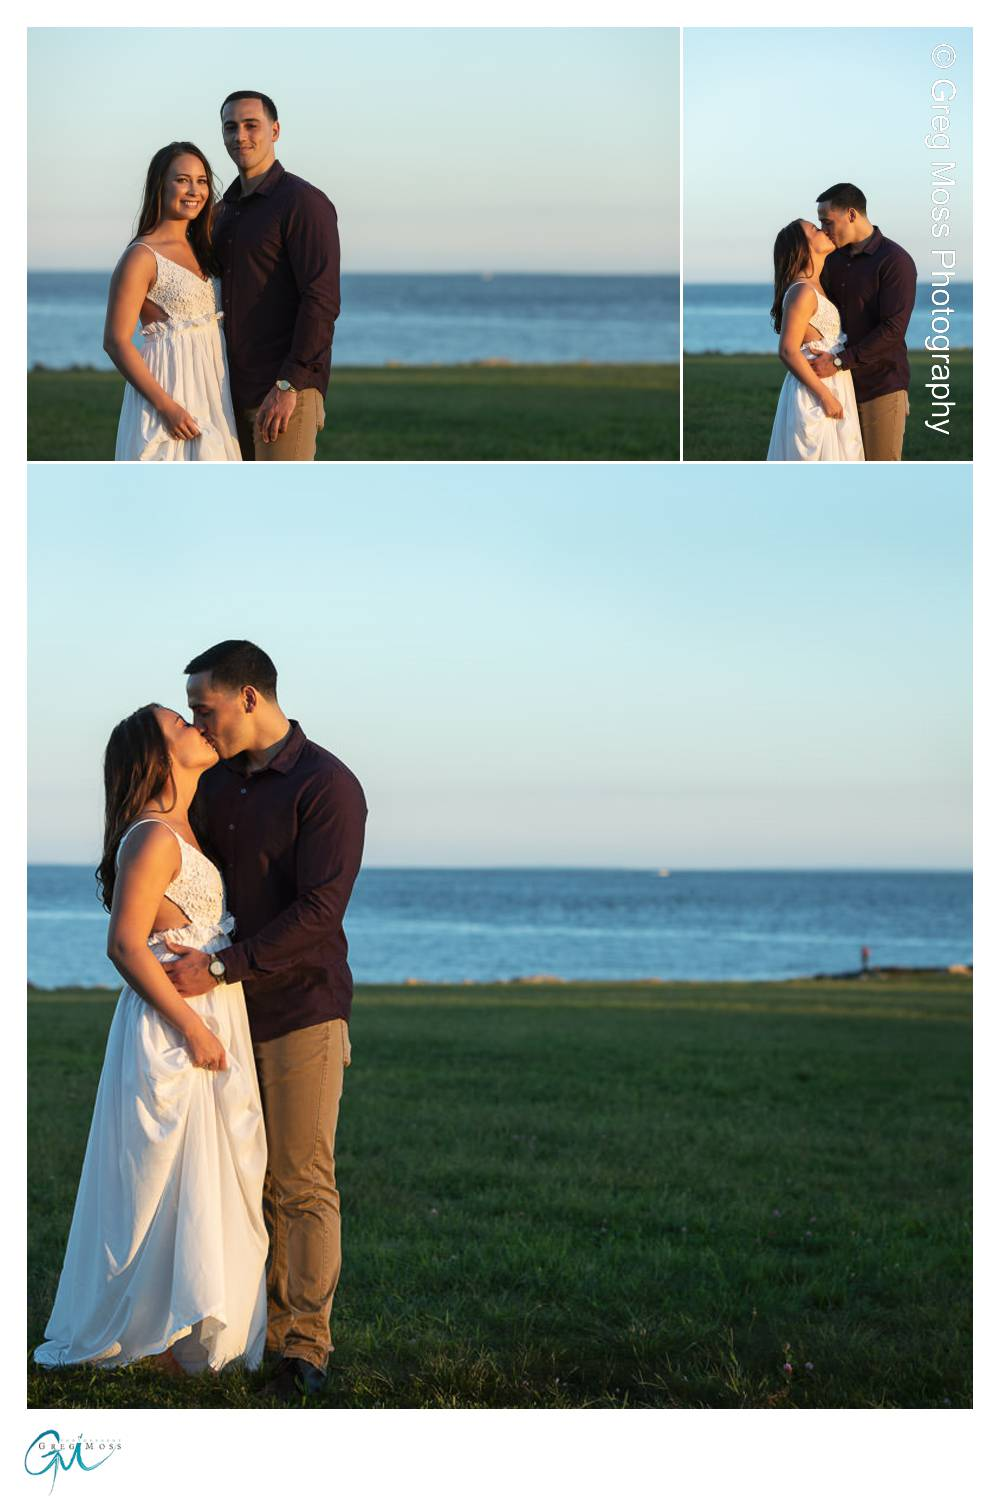 Engaged couple at sunset with Atlantic ocean in the background